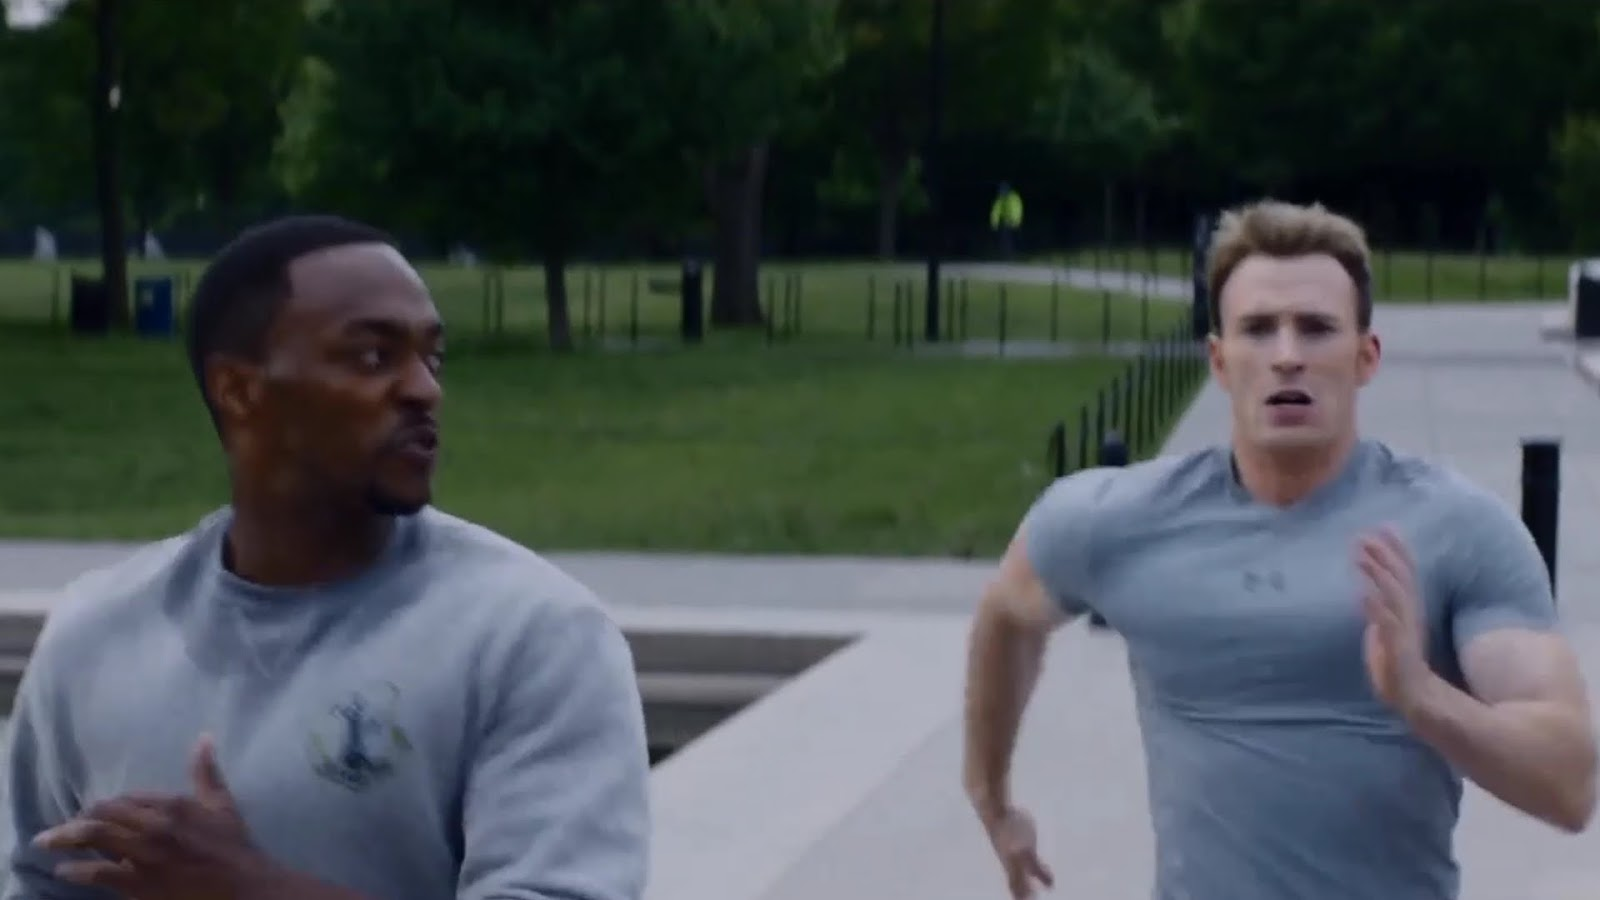 A Life Between Runs: Captain America is way too fast - a runner's rant